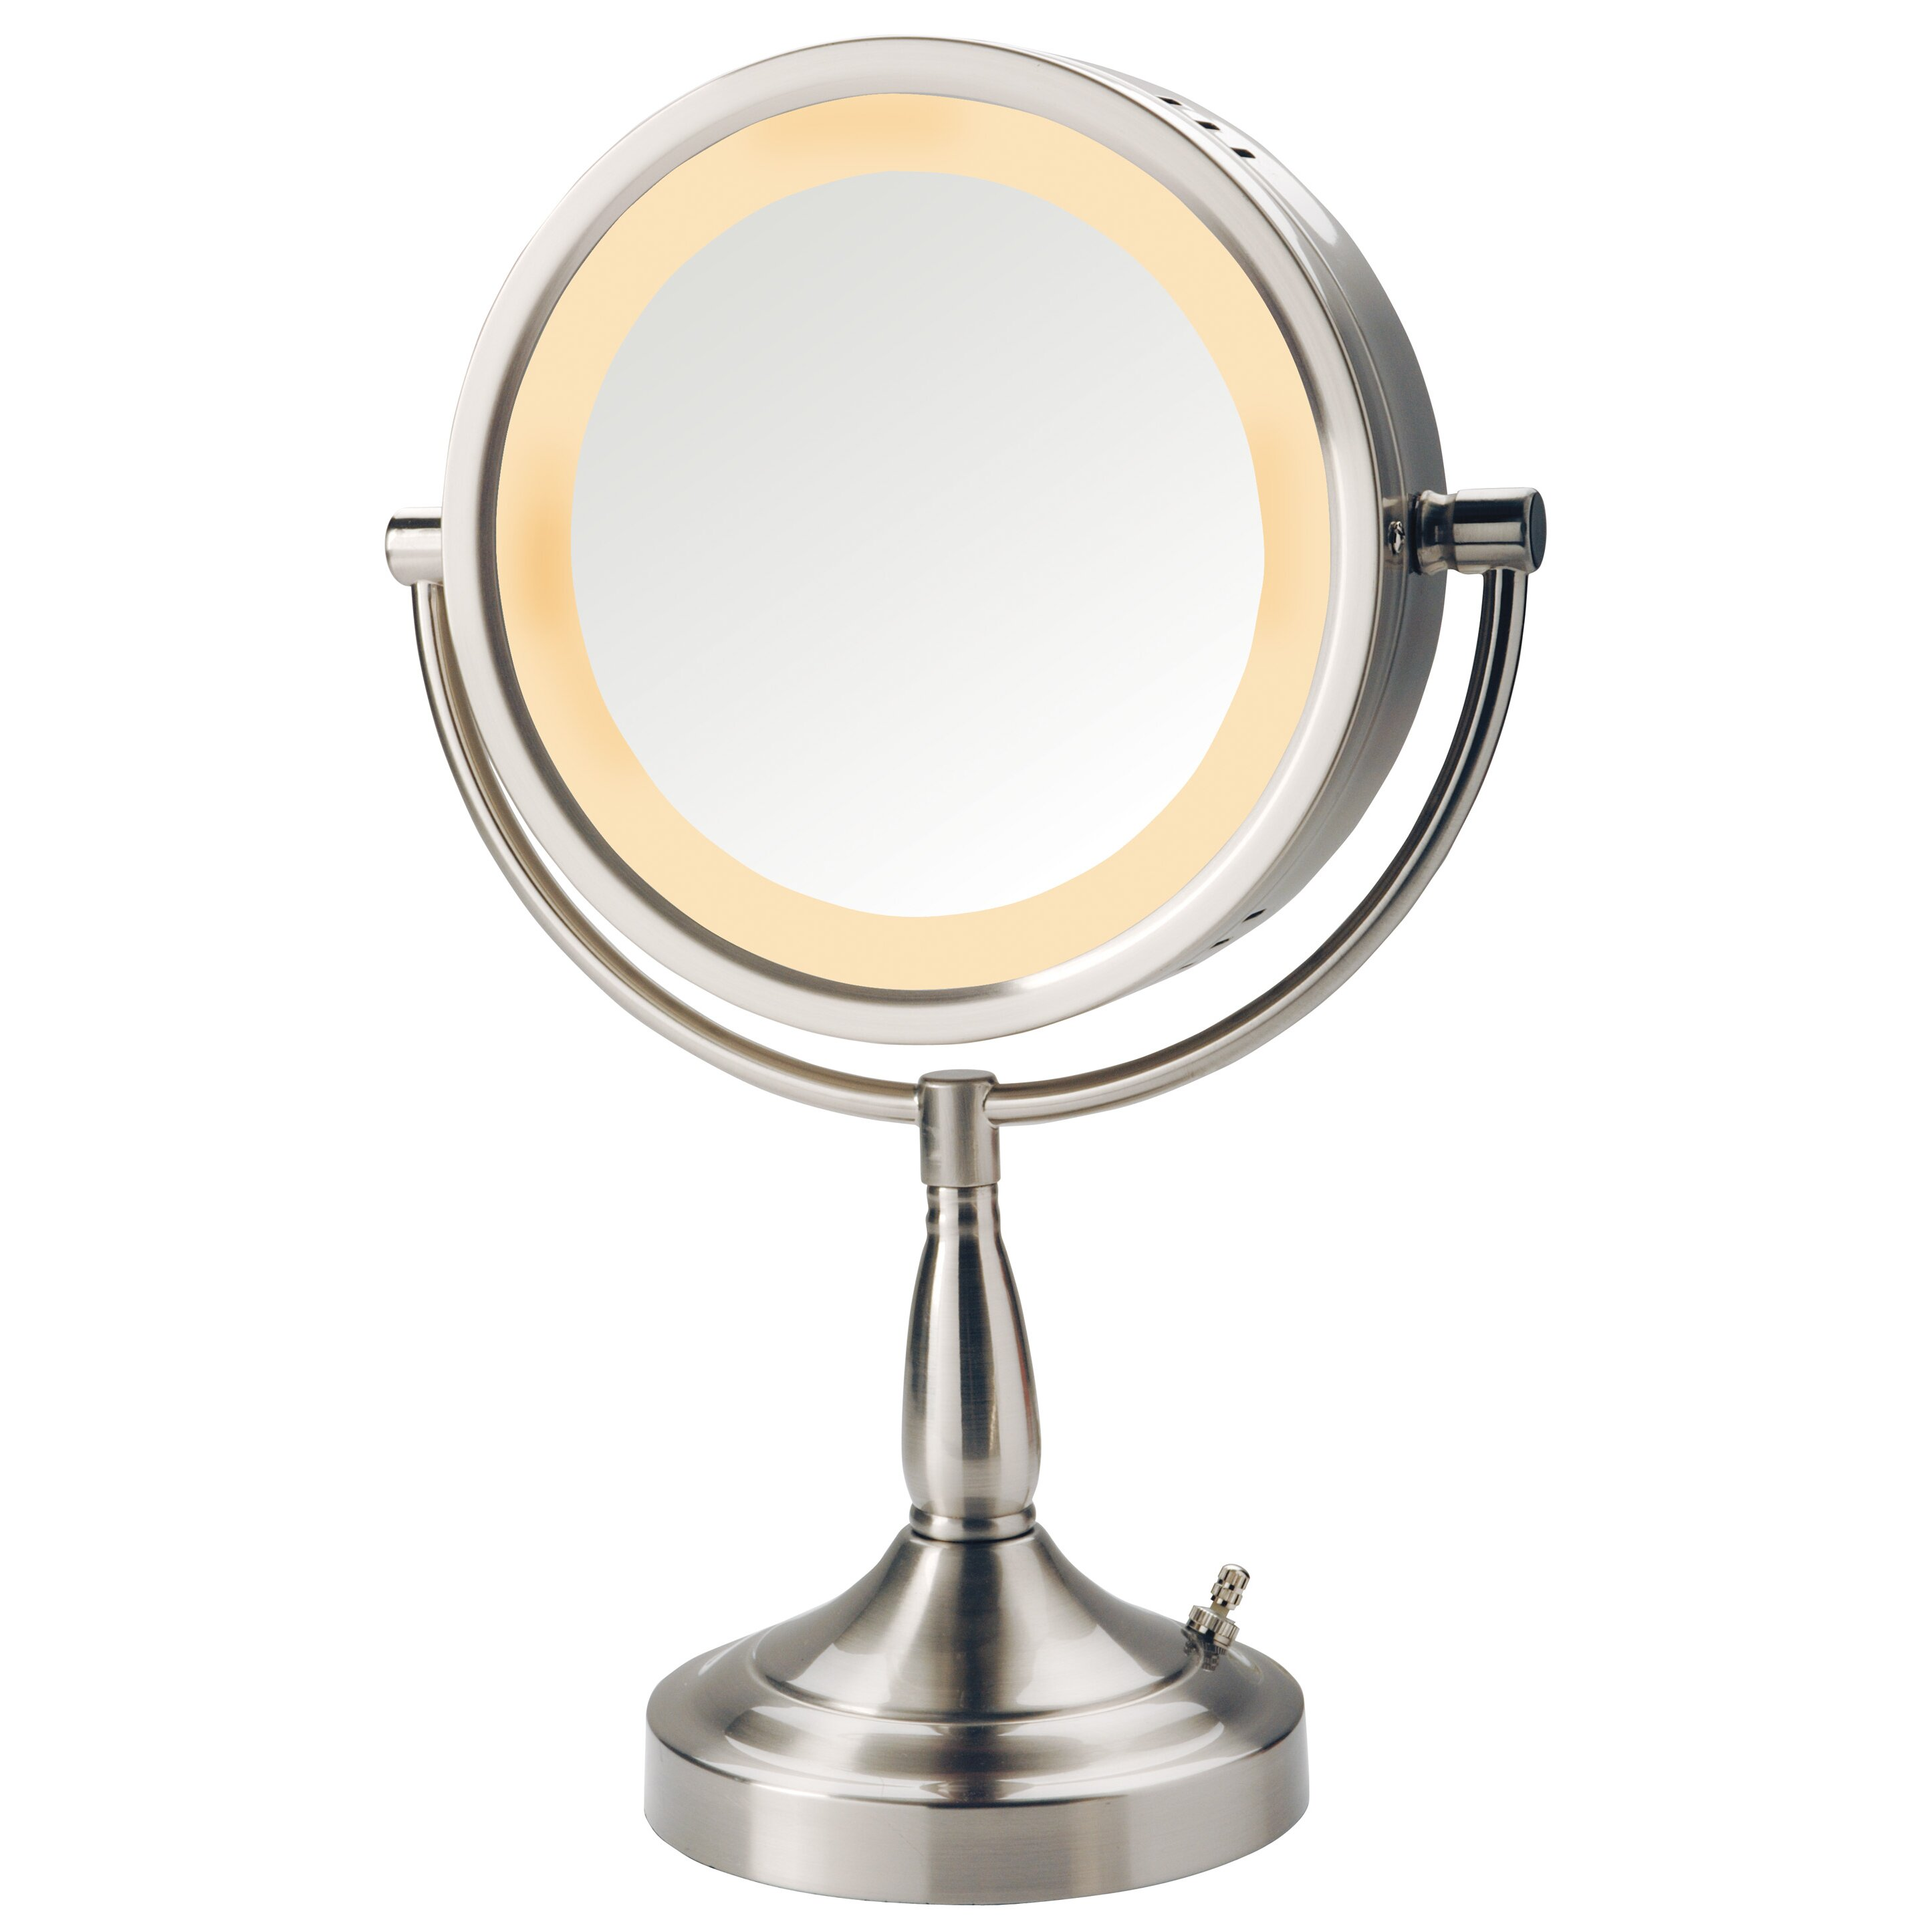 Vanity Mirror With Lights Reviews : Jerdon Halo Lighted Vanity Mirror & Reviews Wayfair